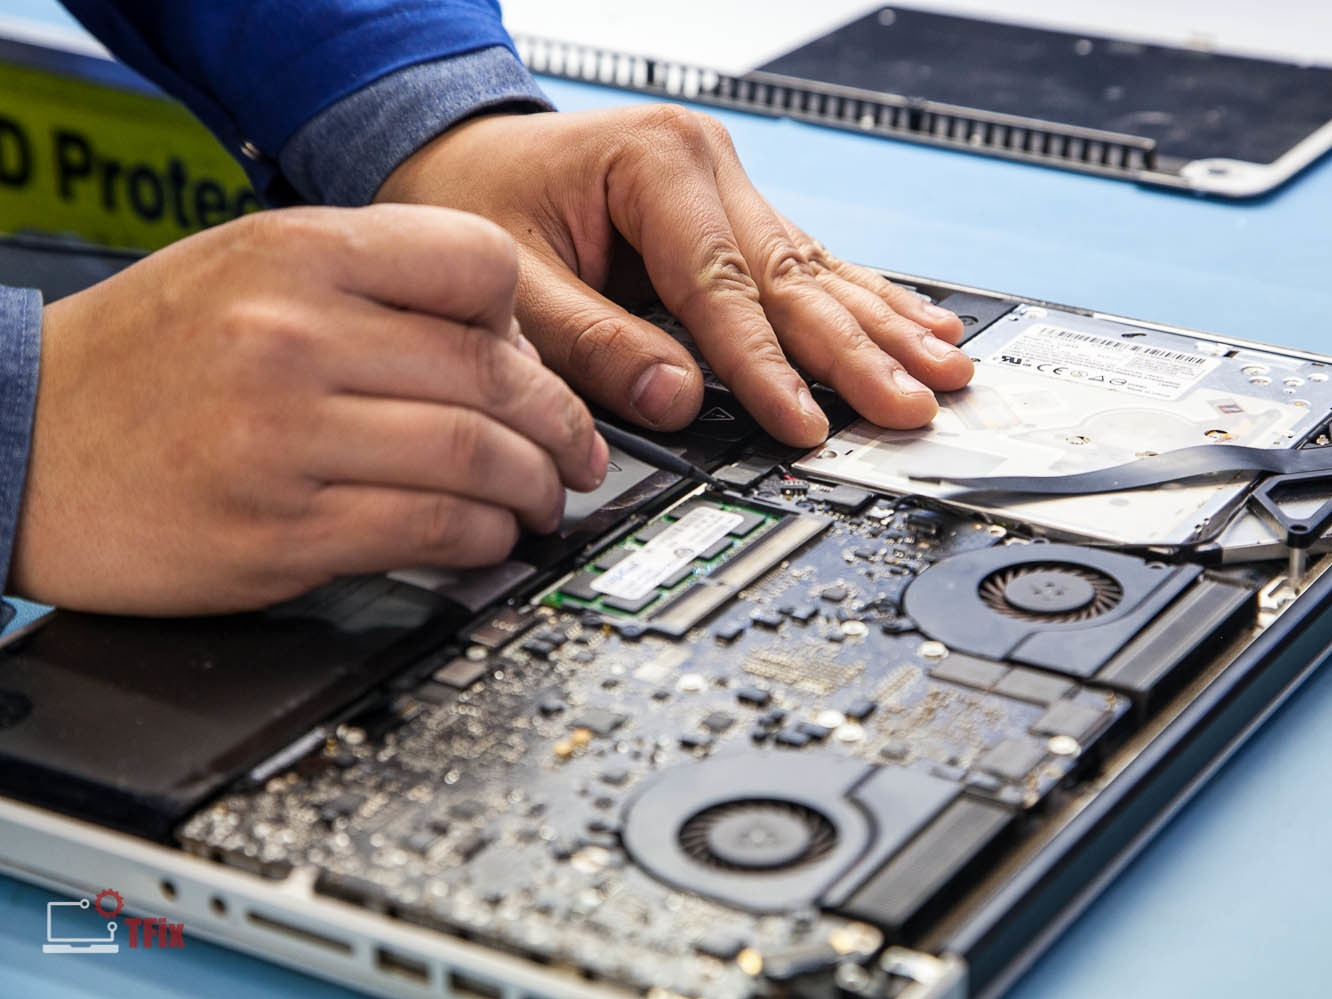 How To Package Logic Board For Shipping Ifixit Repair Guide Electronics Repairs All Types Of Printed Circuit Boards Pc